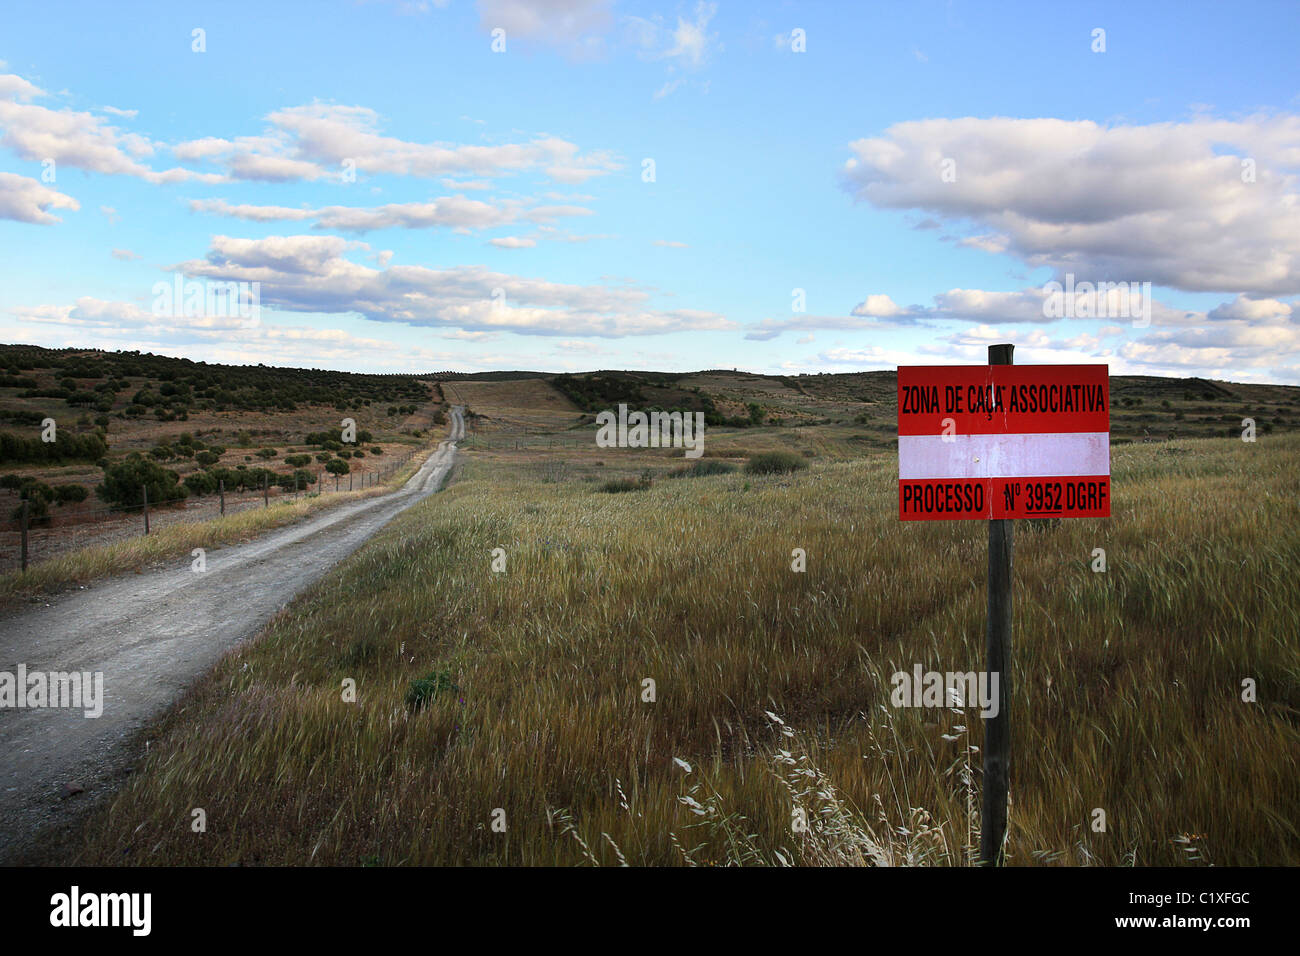 View of a dirt road on the countryside region with a hunting ground sign on Algarve/Portugal. - Stock Image